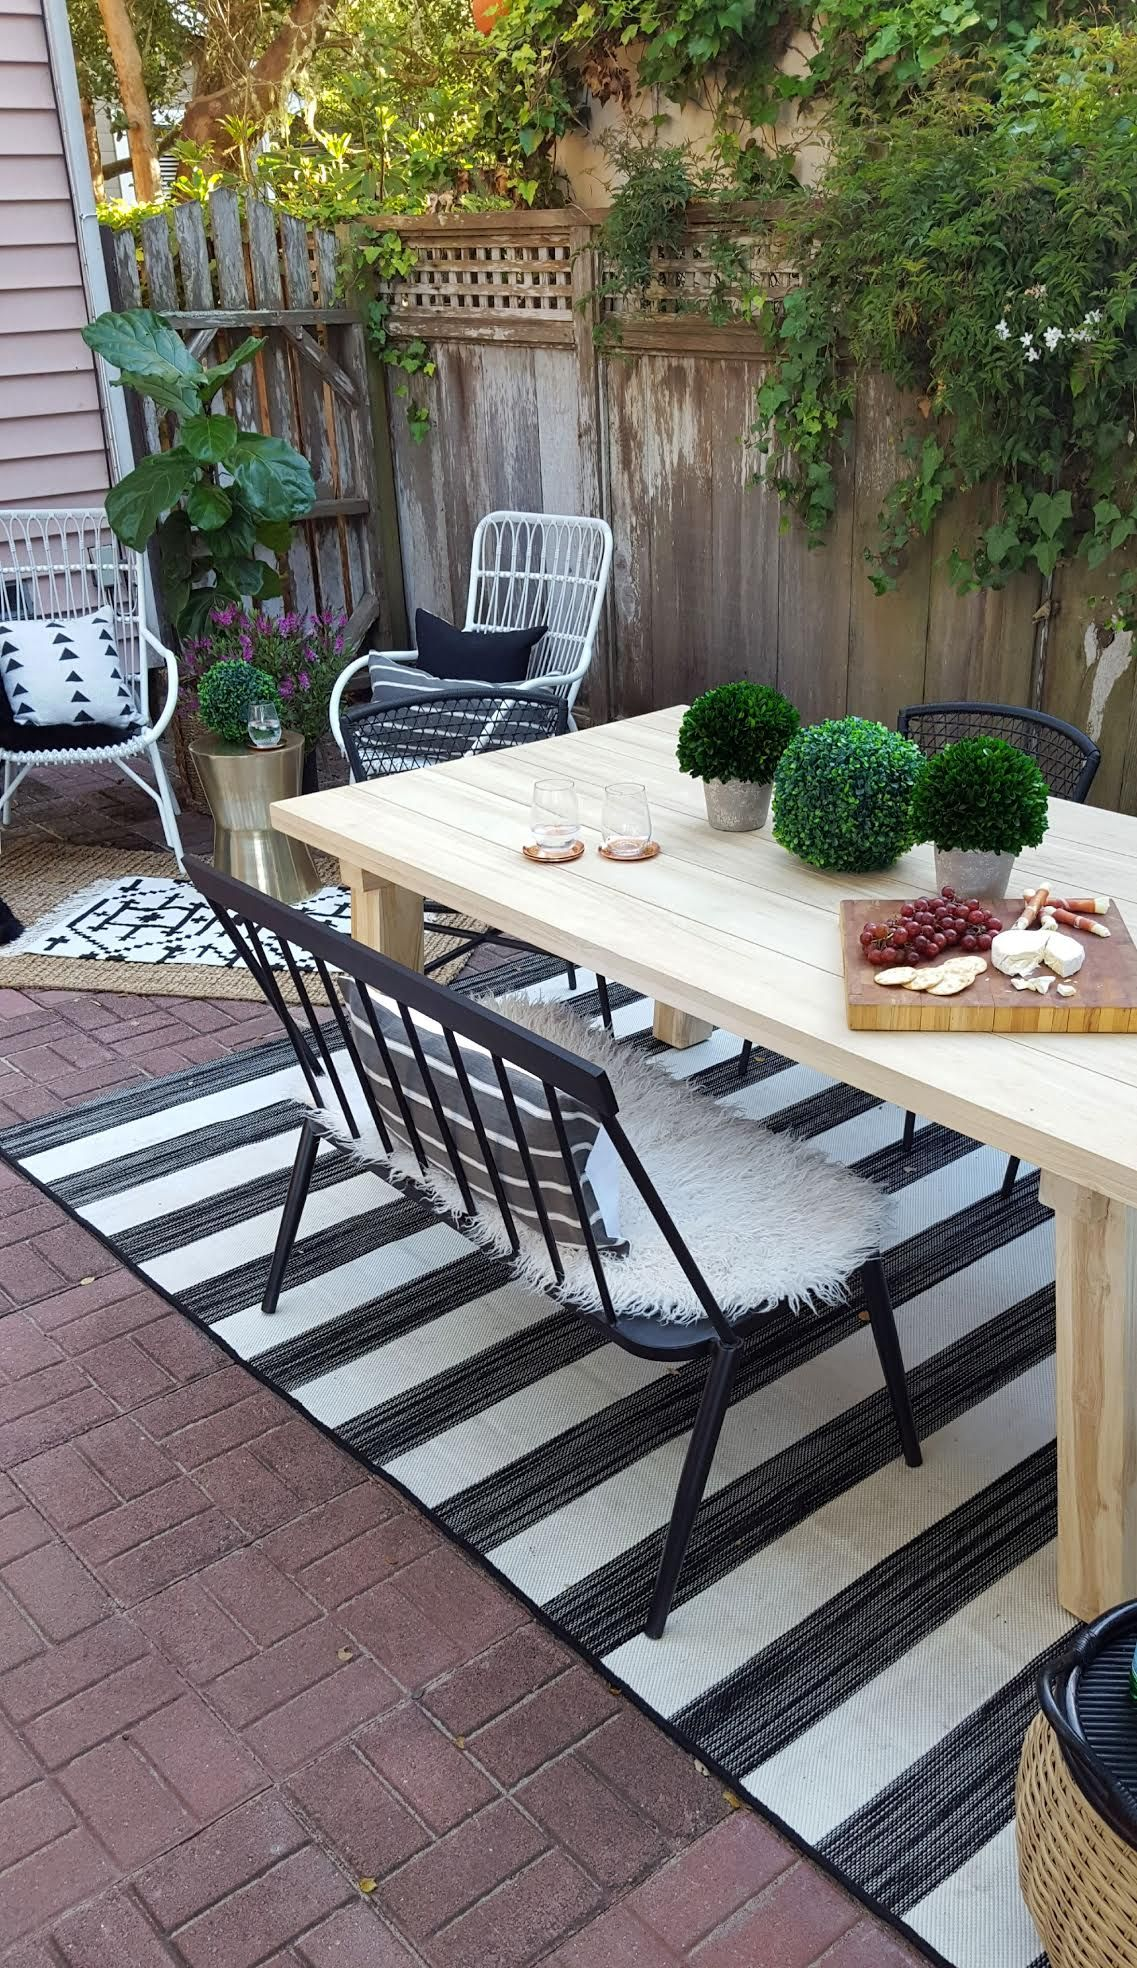 Patio Makeover With Article (With images) | Patio, Patio ... on Living Spaces Outdoor Dining id=86098